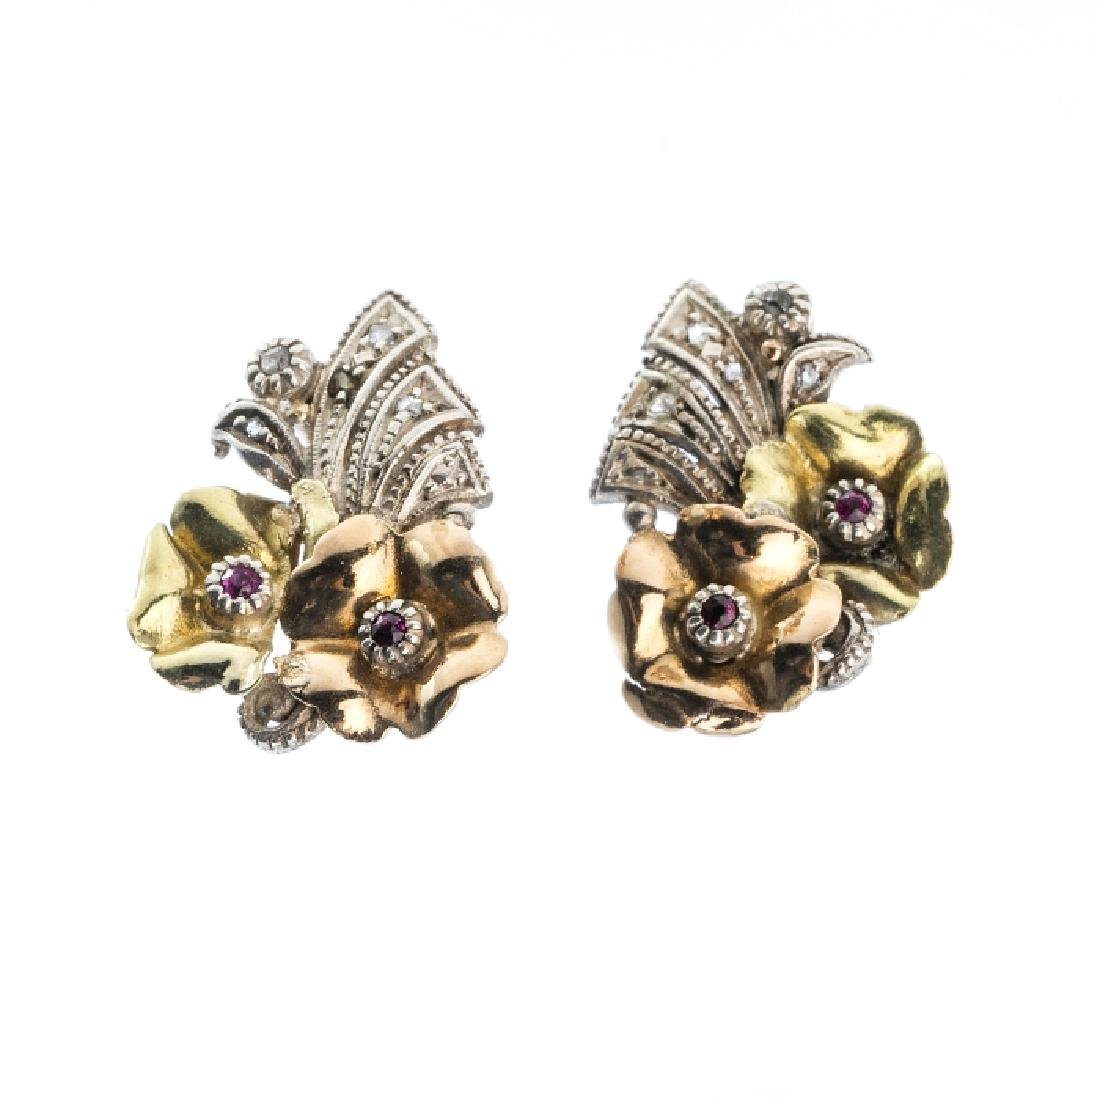 Art Deco earrings in silver and gold with diamonds and